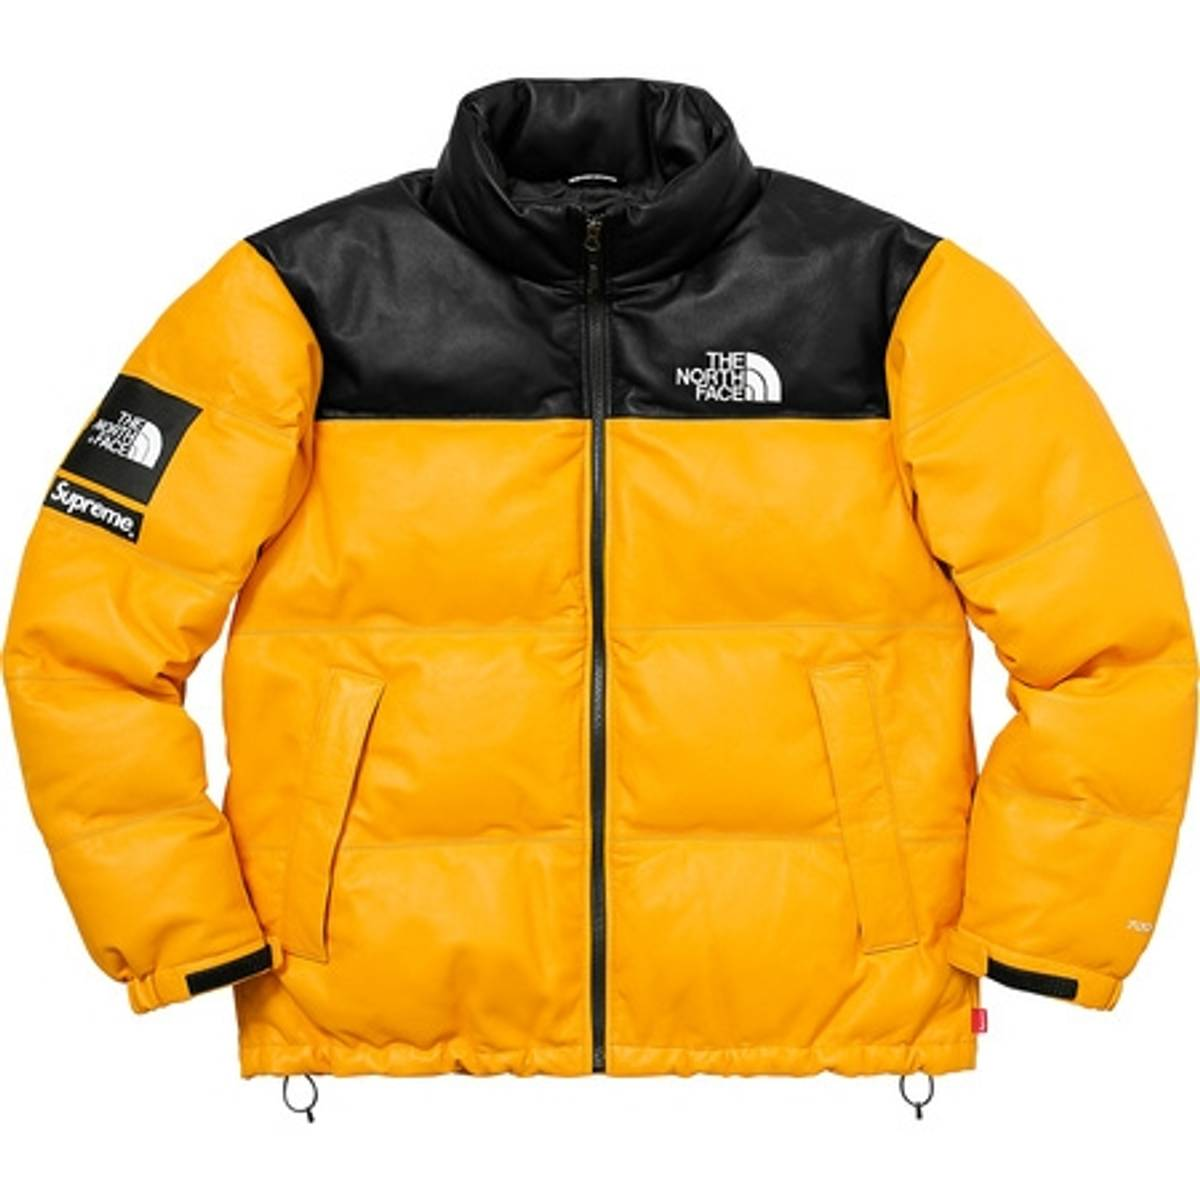 Supreme Supreme The North Face Leather Nuptse Jacket Yellow Size m - Leather  Jackets for Sale - Grailed 691dbeb6a